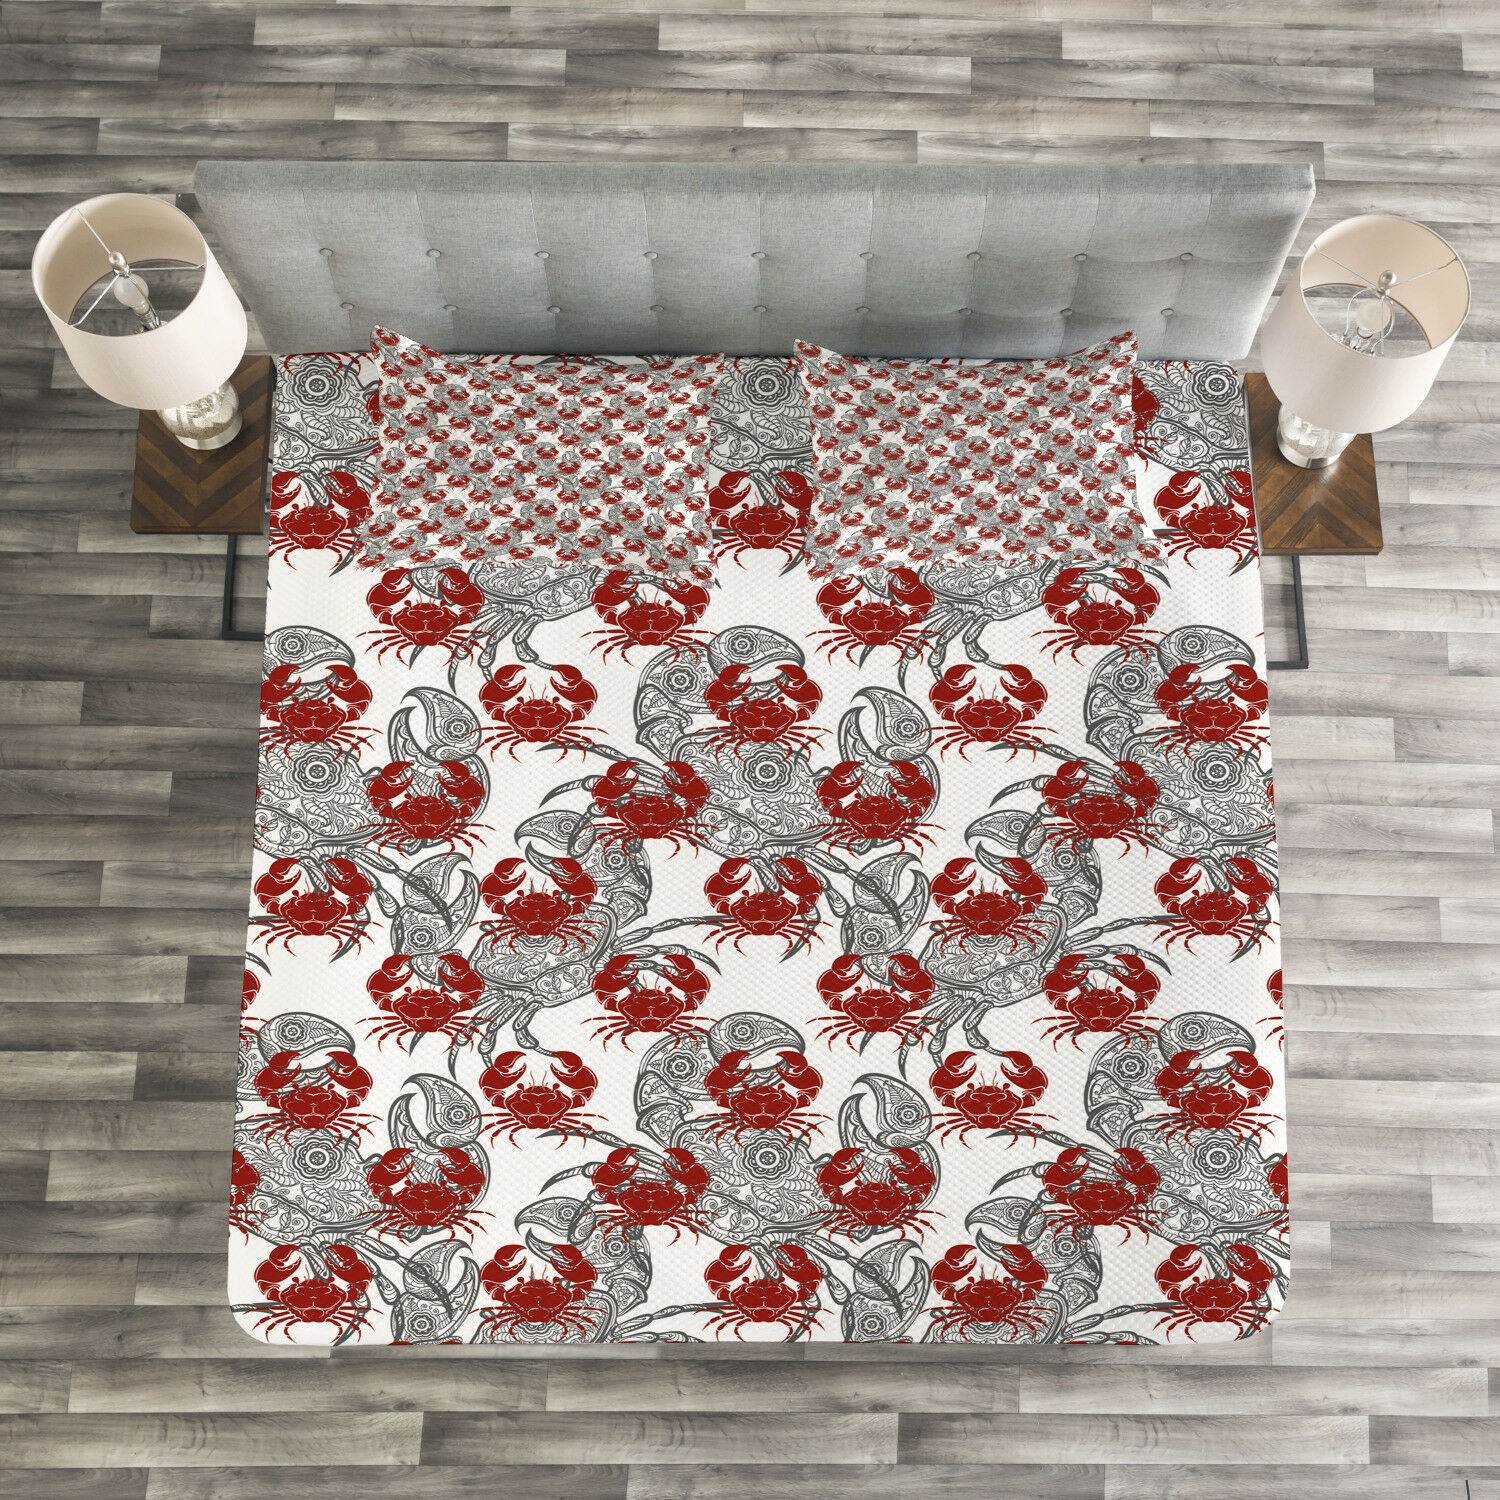 Sea Animal Quilted Bedspread & Pillow Shams Set, Illustration of Crab Print